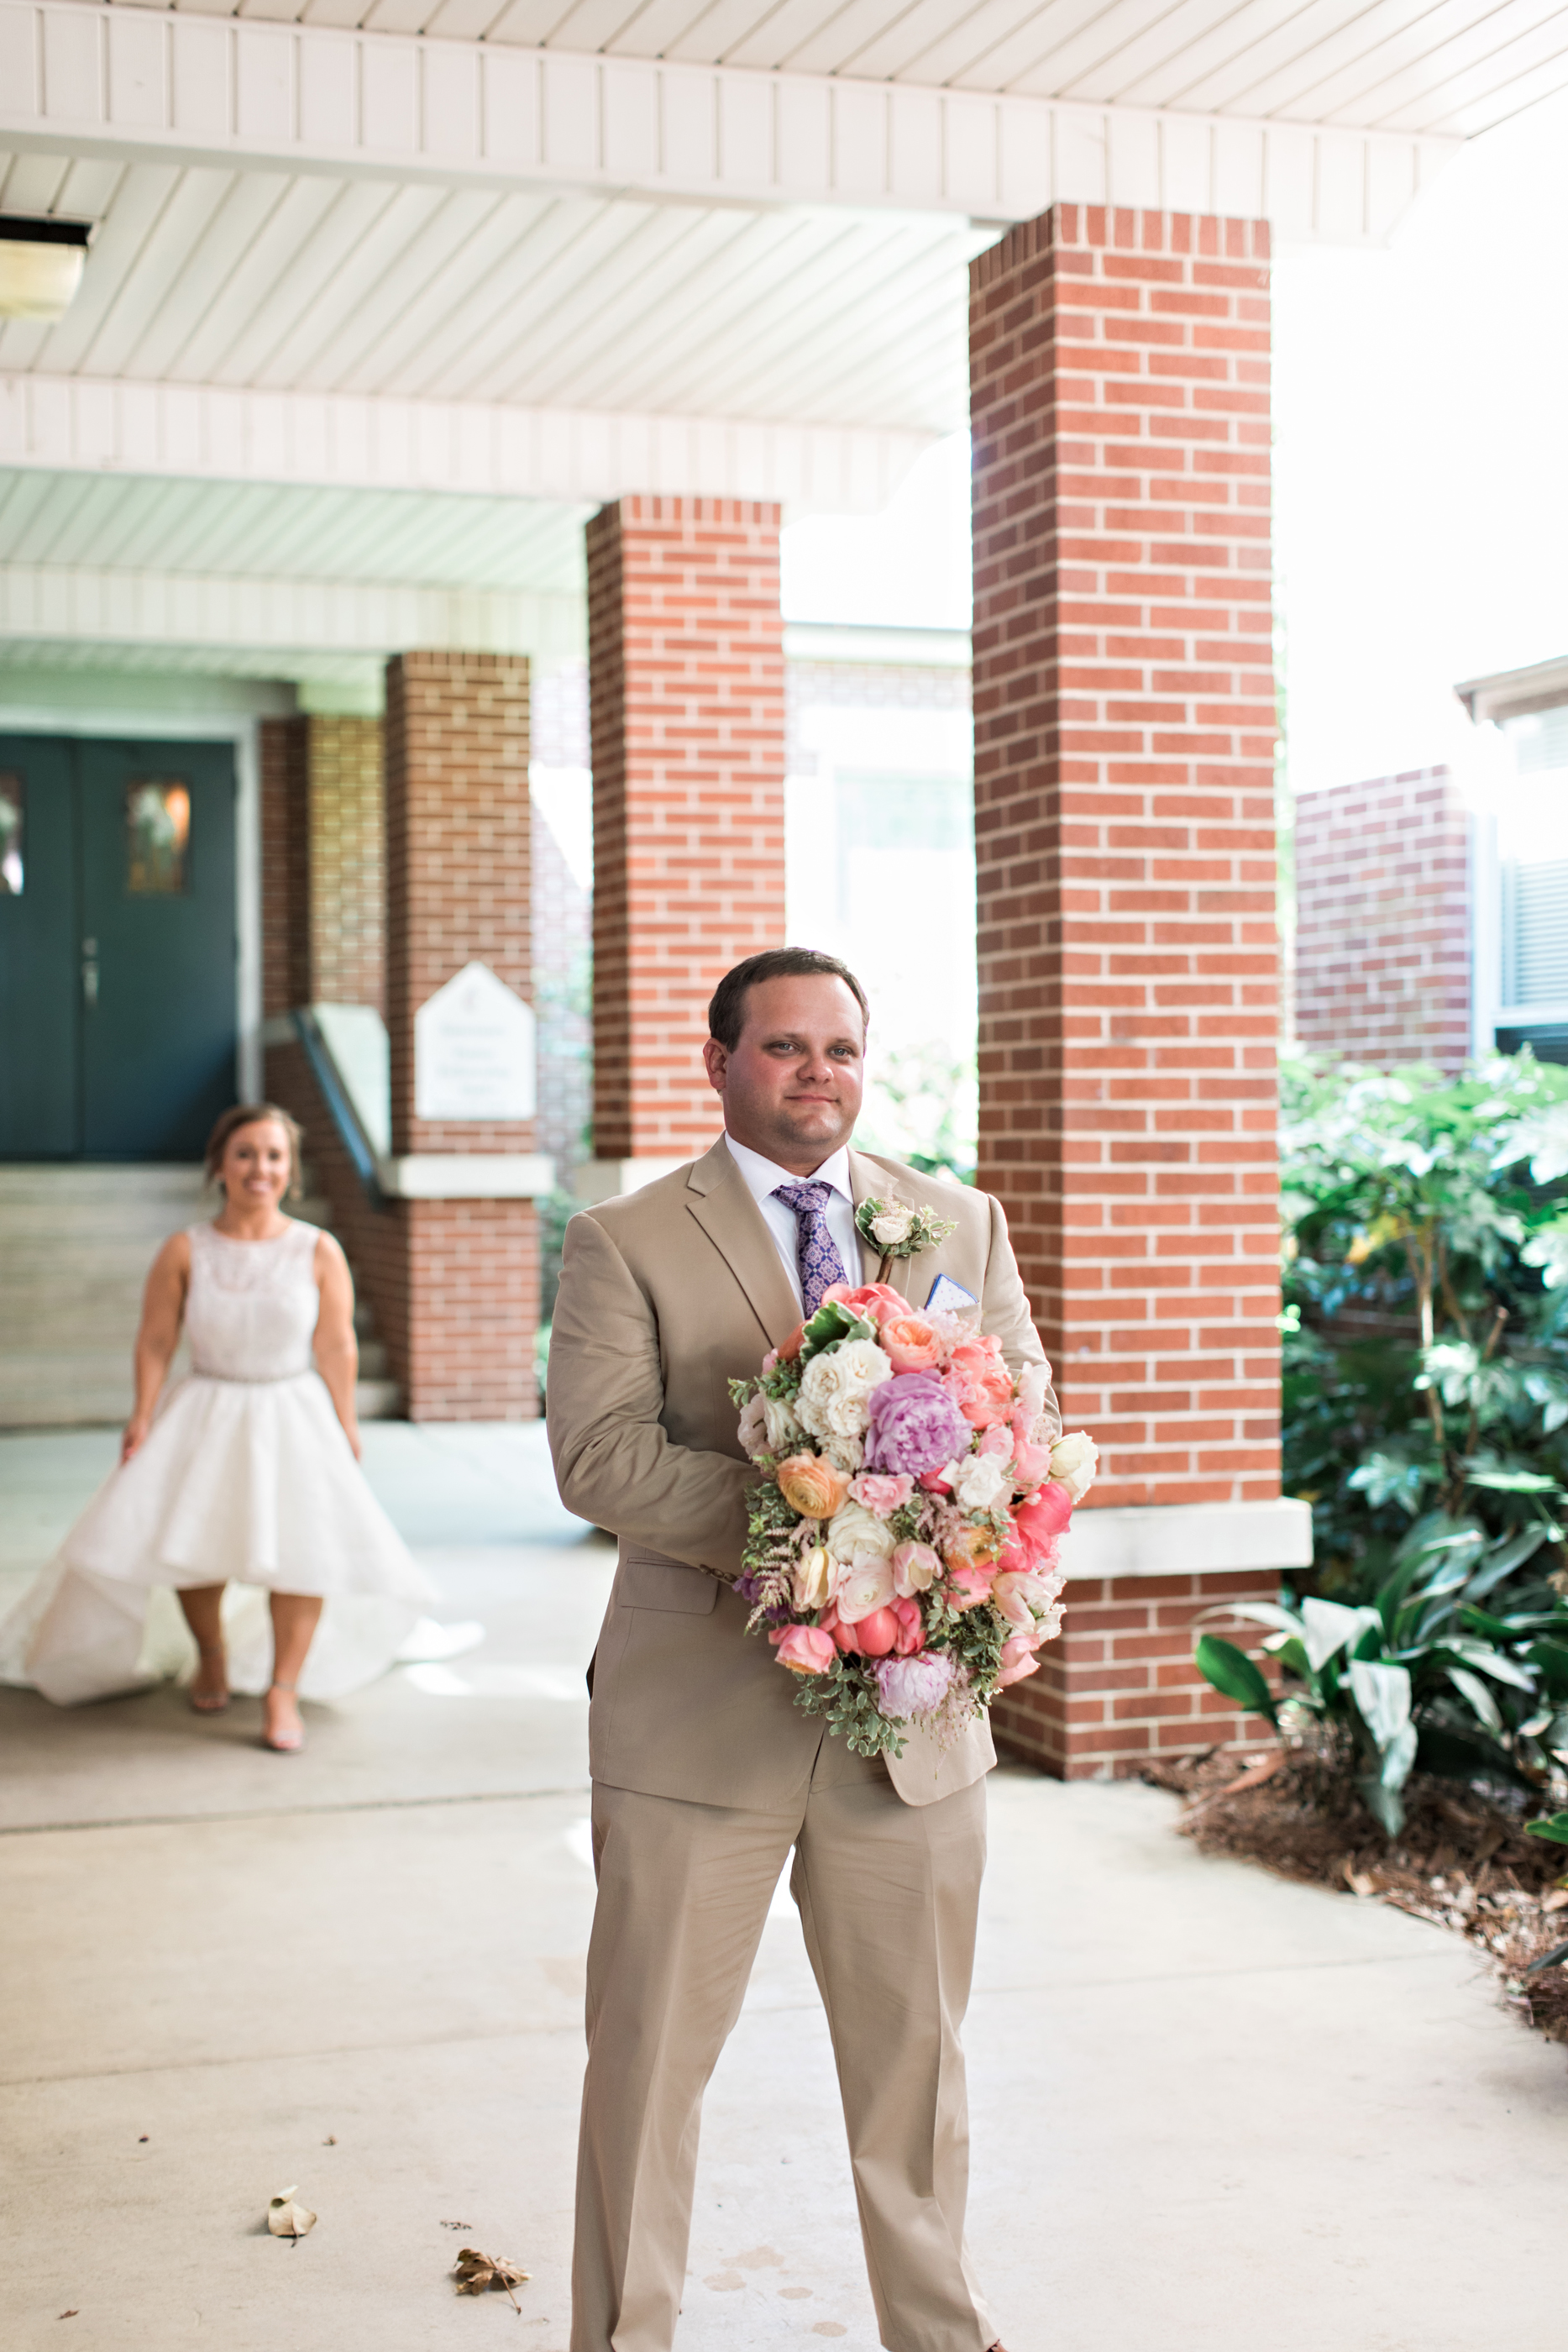 Alabama-Wedding-Photographers-Nick-Drollette-Hailey and Reed-108.jpg